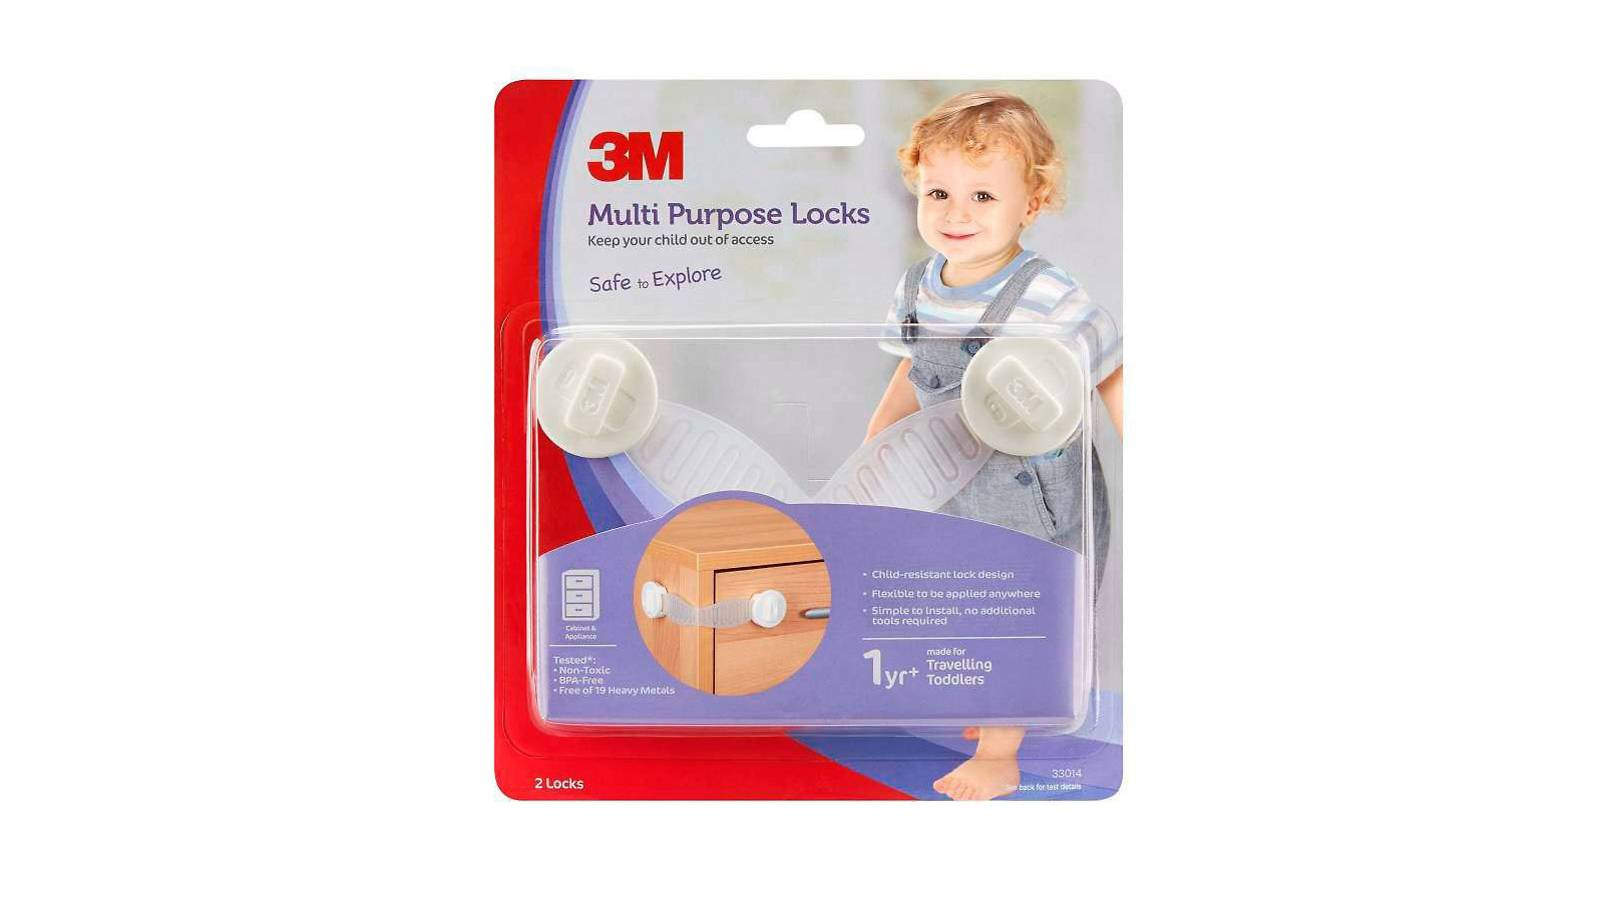 Babies-BUYER'S-GUIDE-Top-products-to-babyproof-your-home-3MMultiPurpose